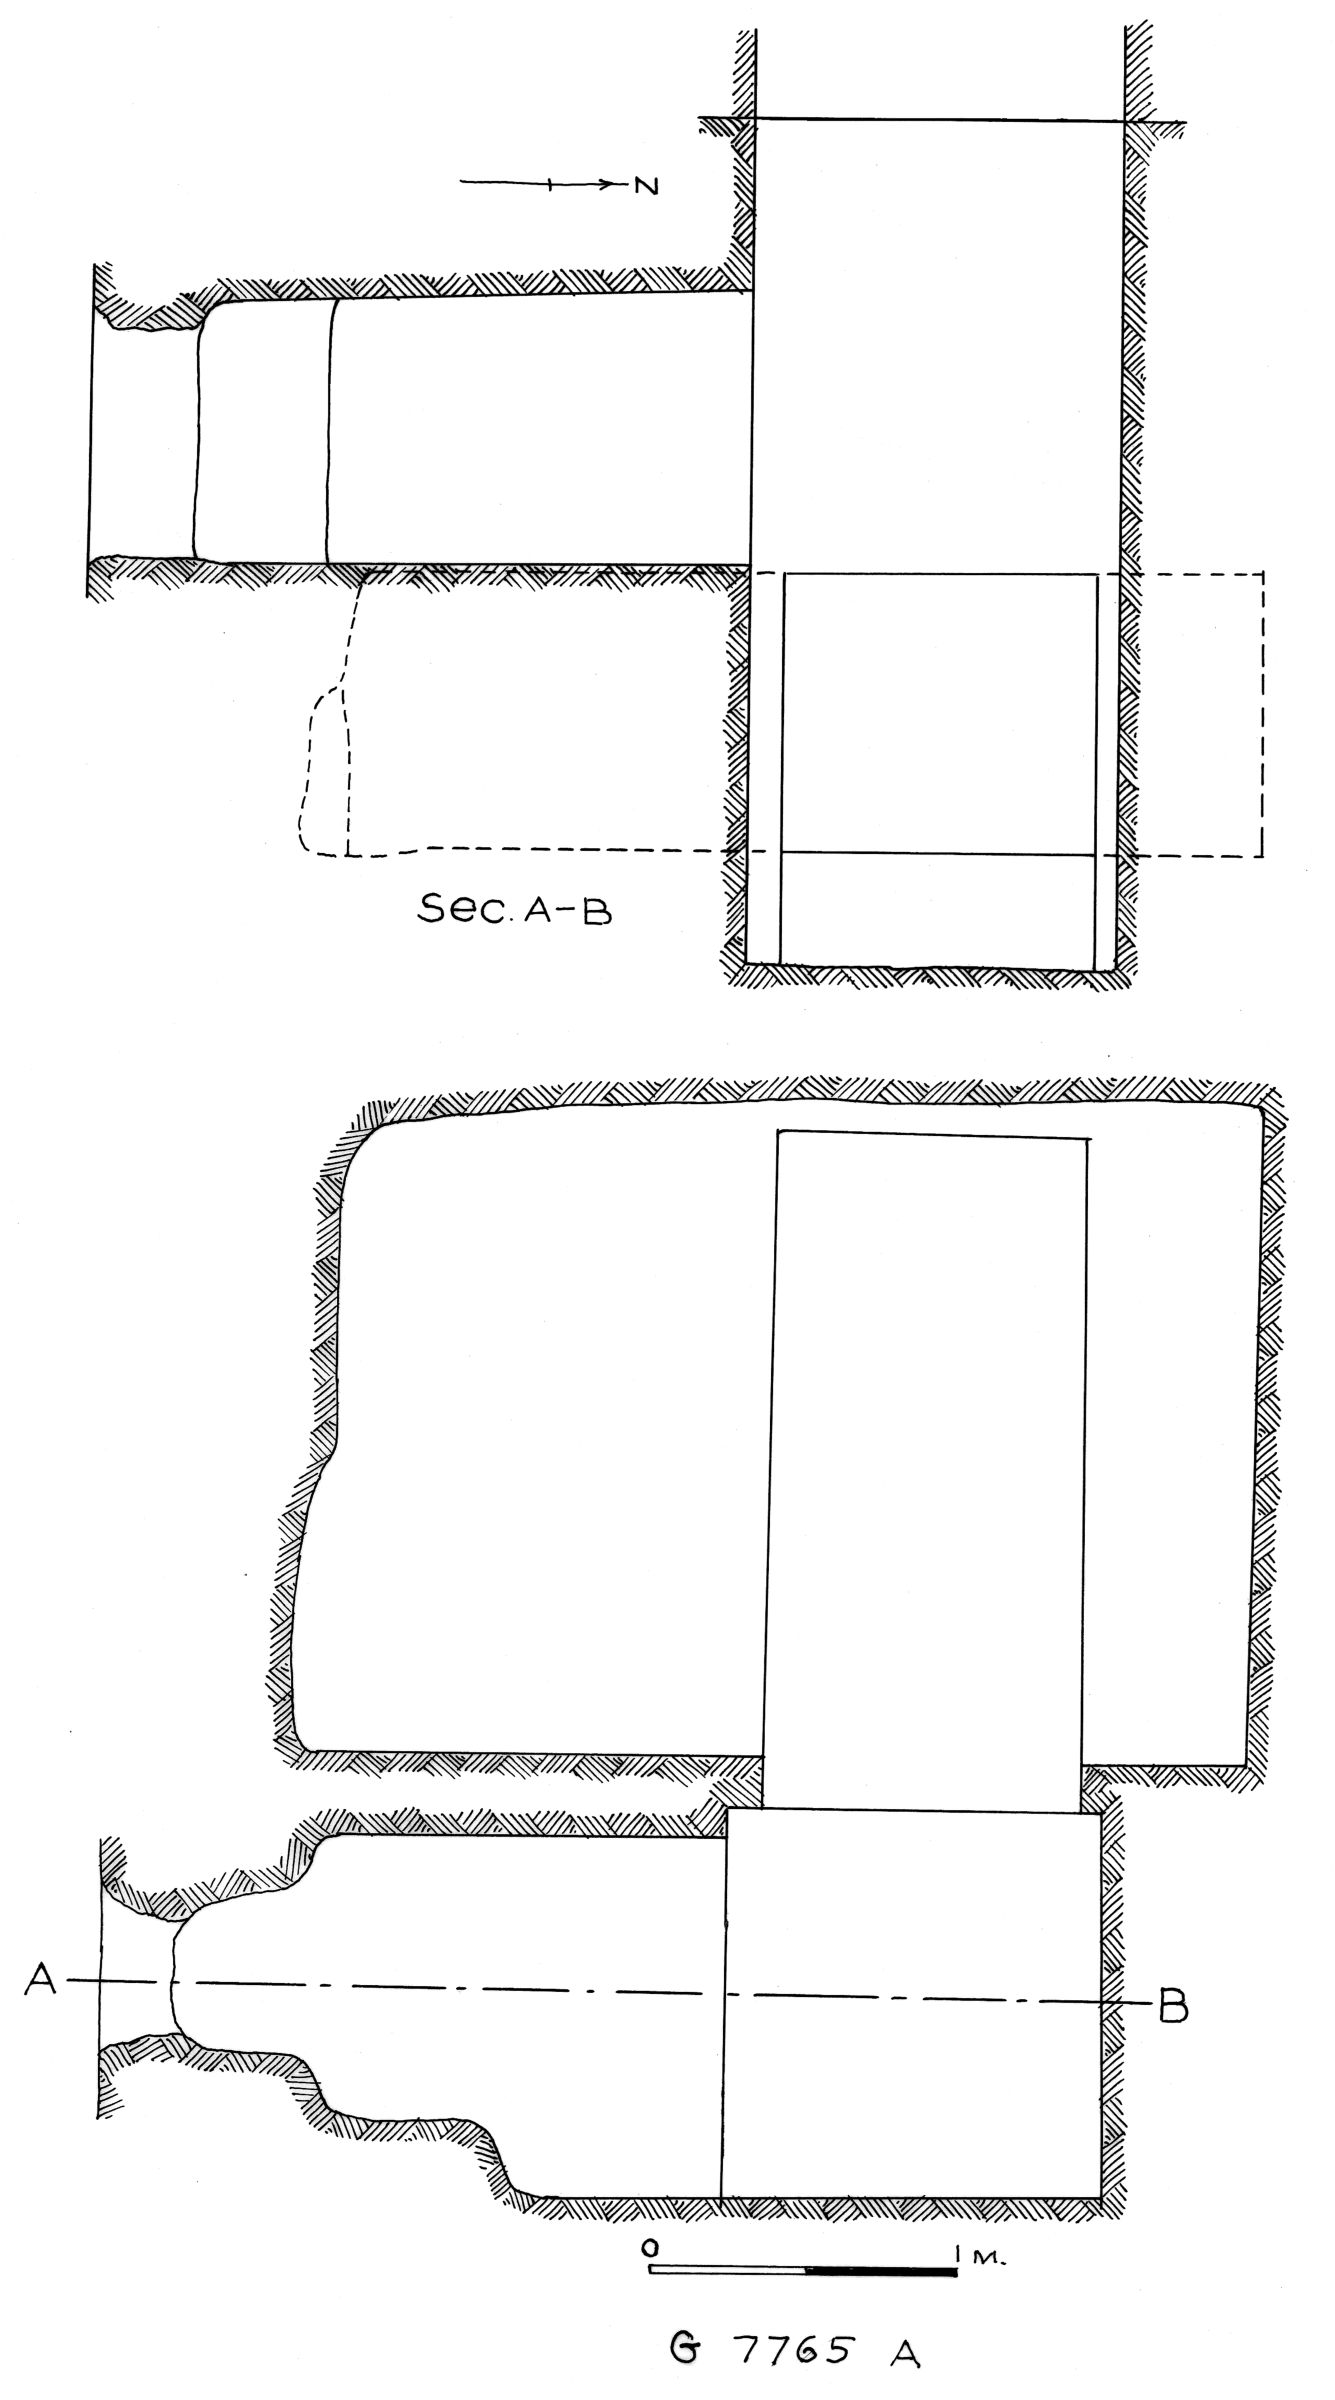 Maps and plans: G 7765, Shaft A